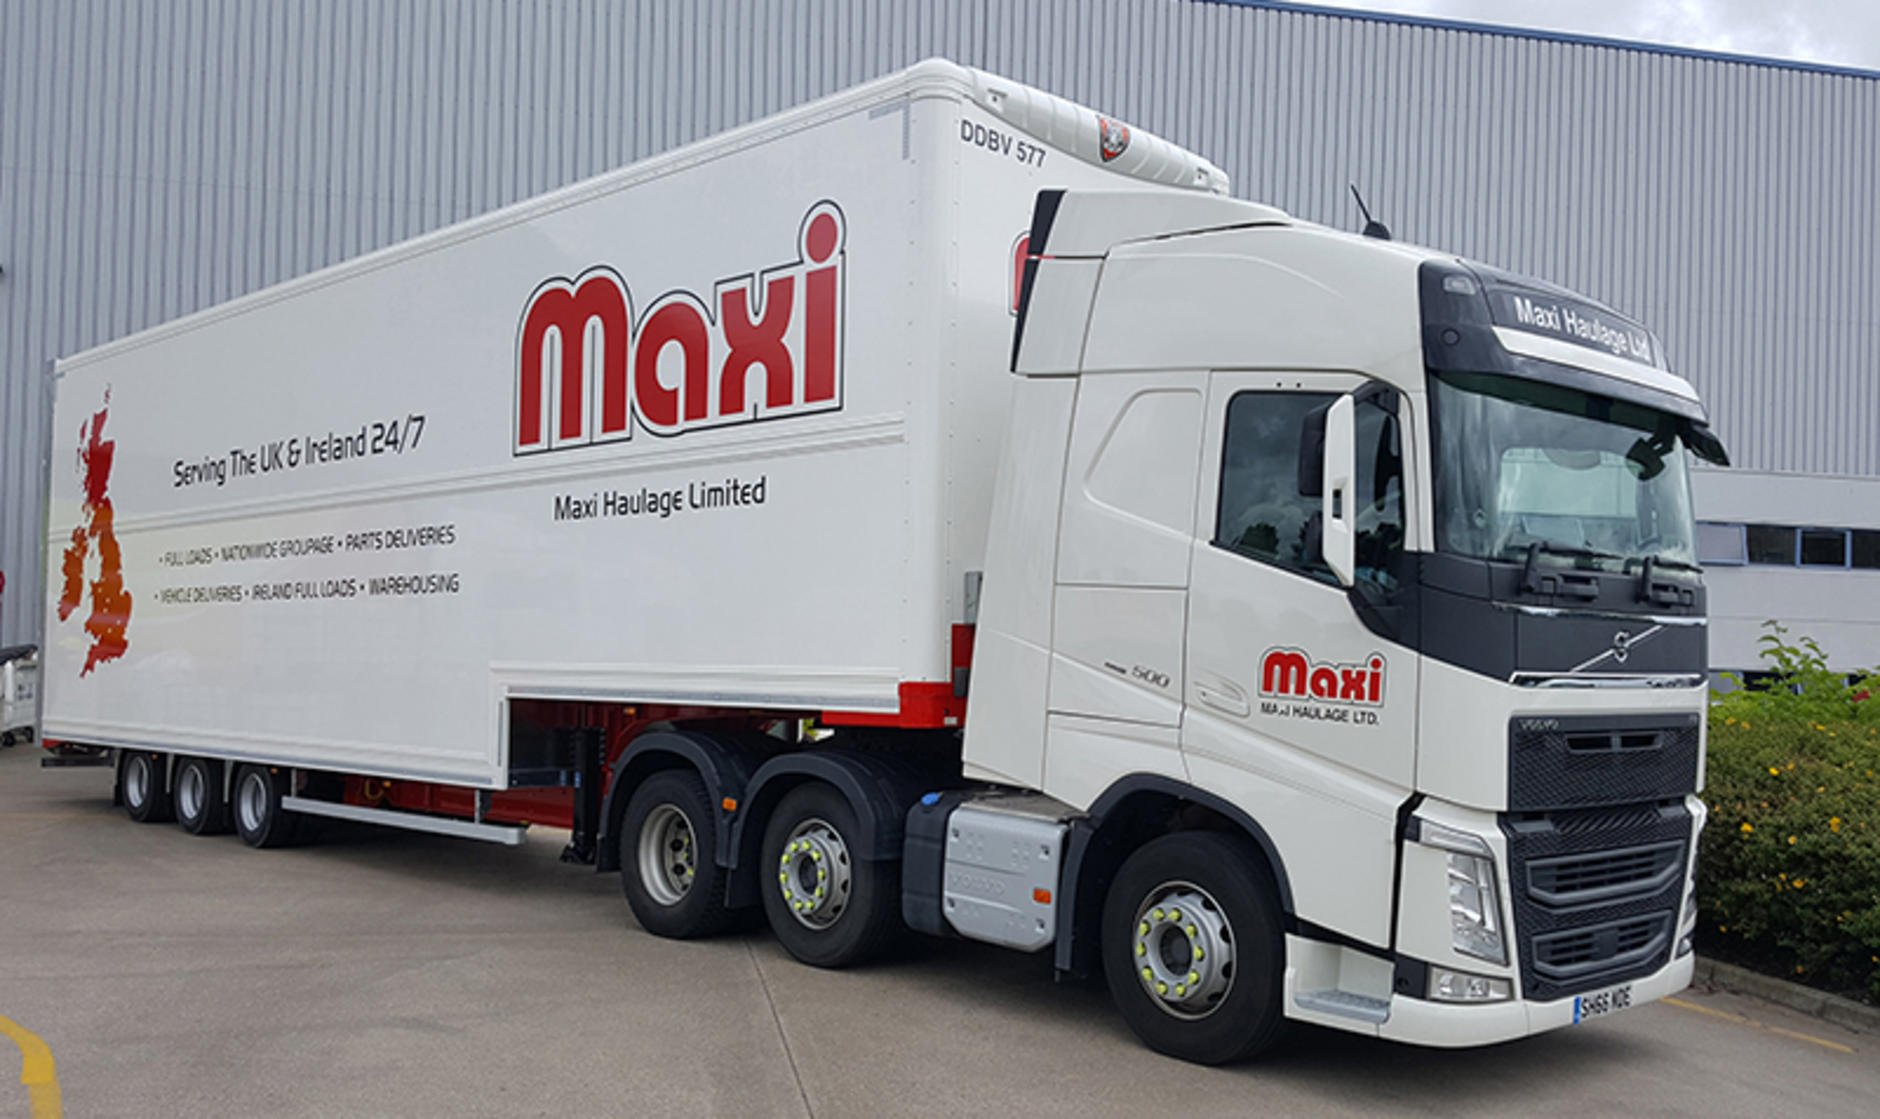 Maxi Haulage buys trailers from Tiger | Commercial Motor